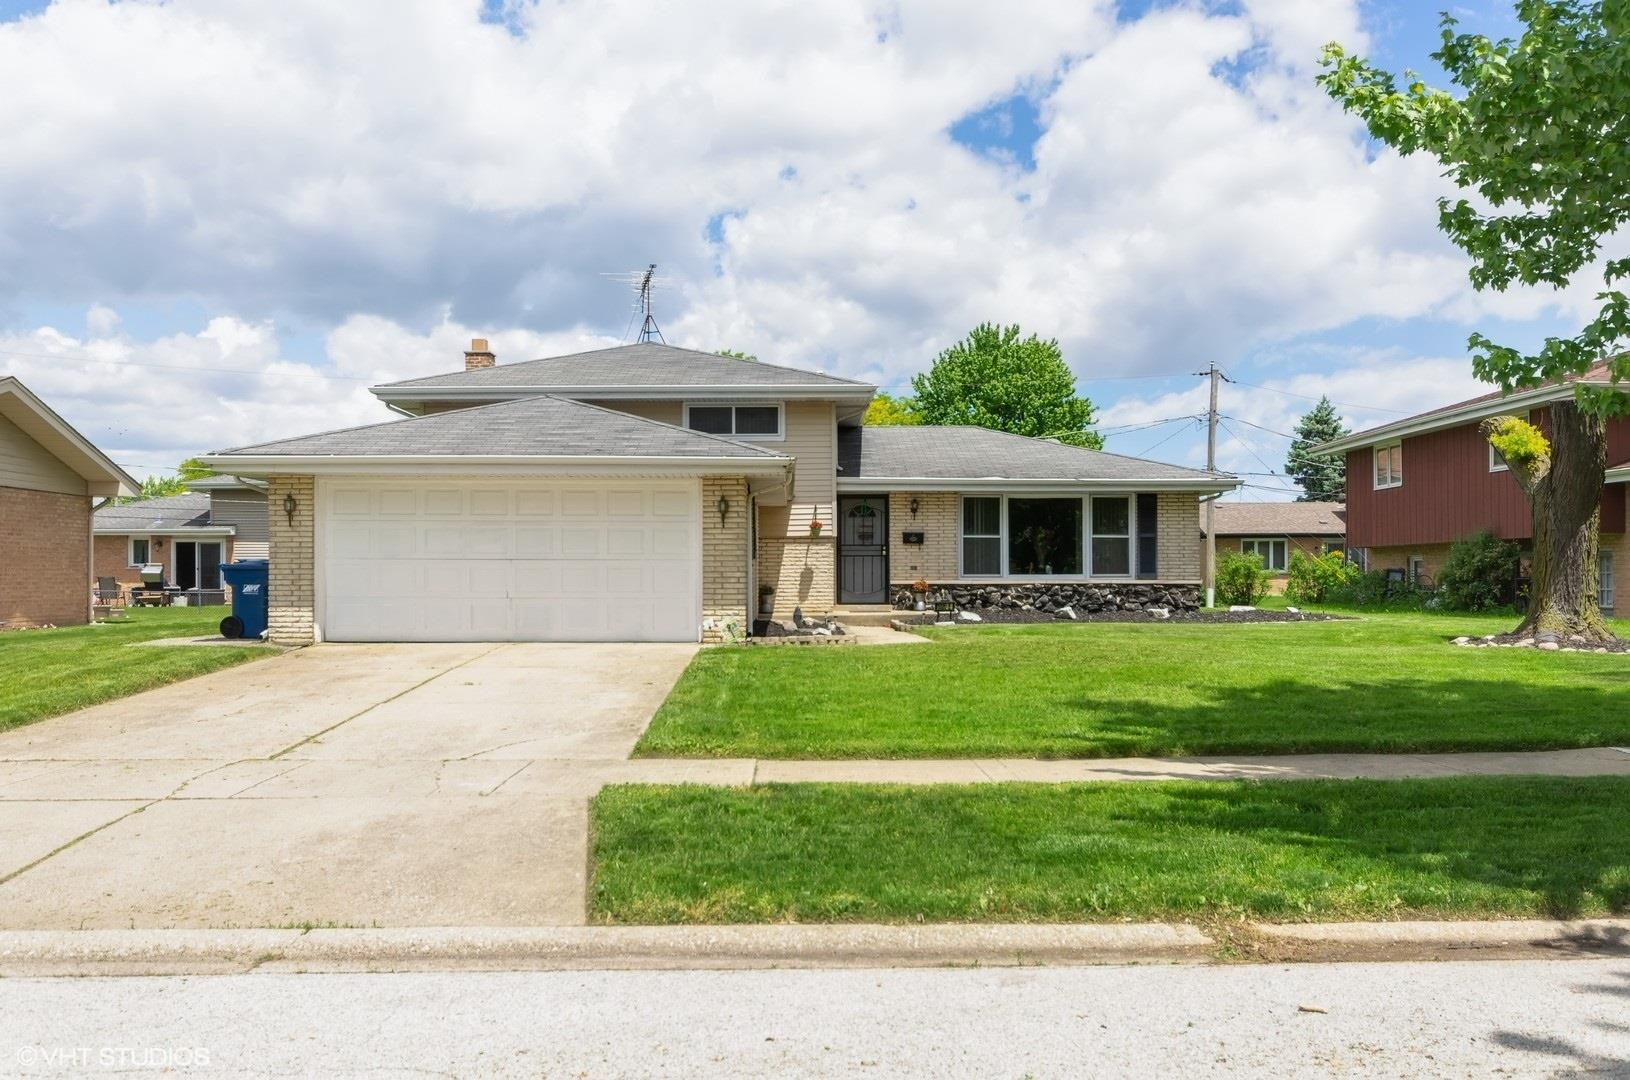 1320 E 169th Place, South Holland, IL 60473 - #: 10728299